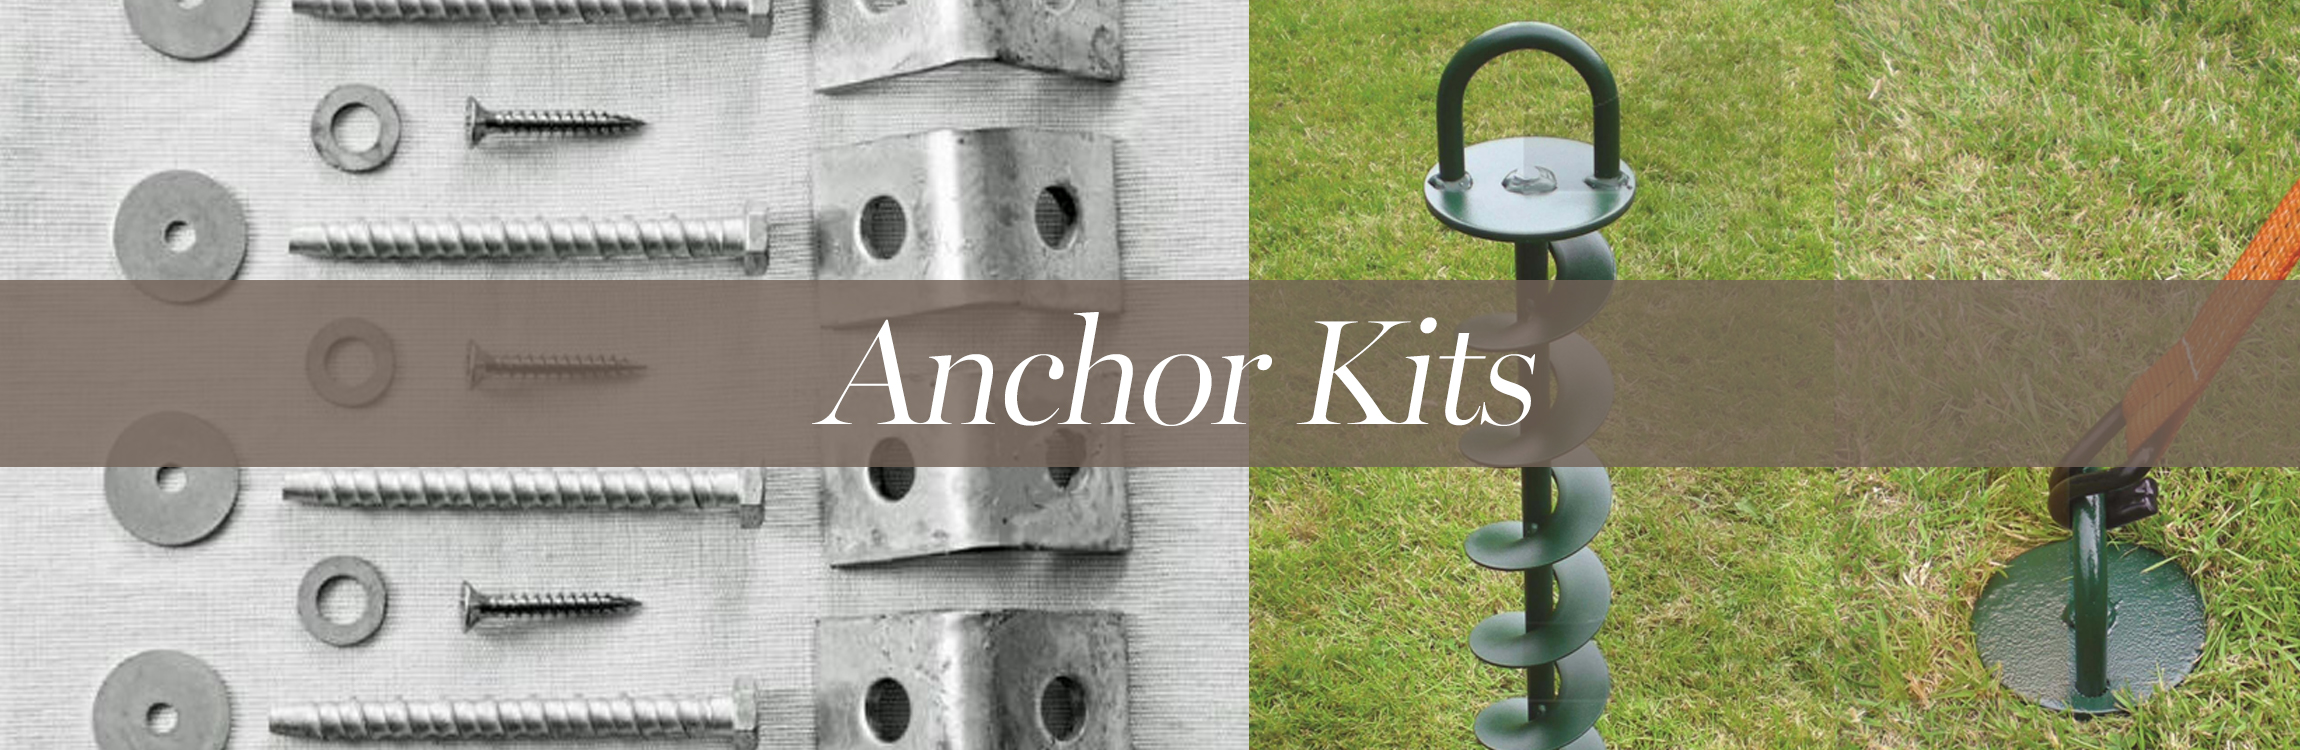 Anchor Kits